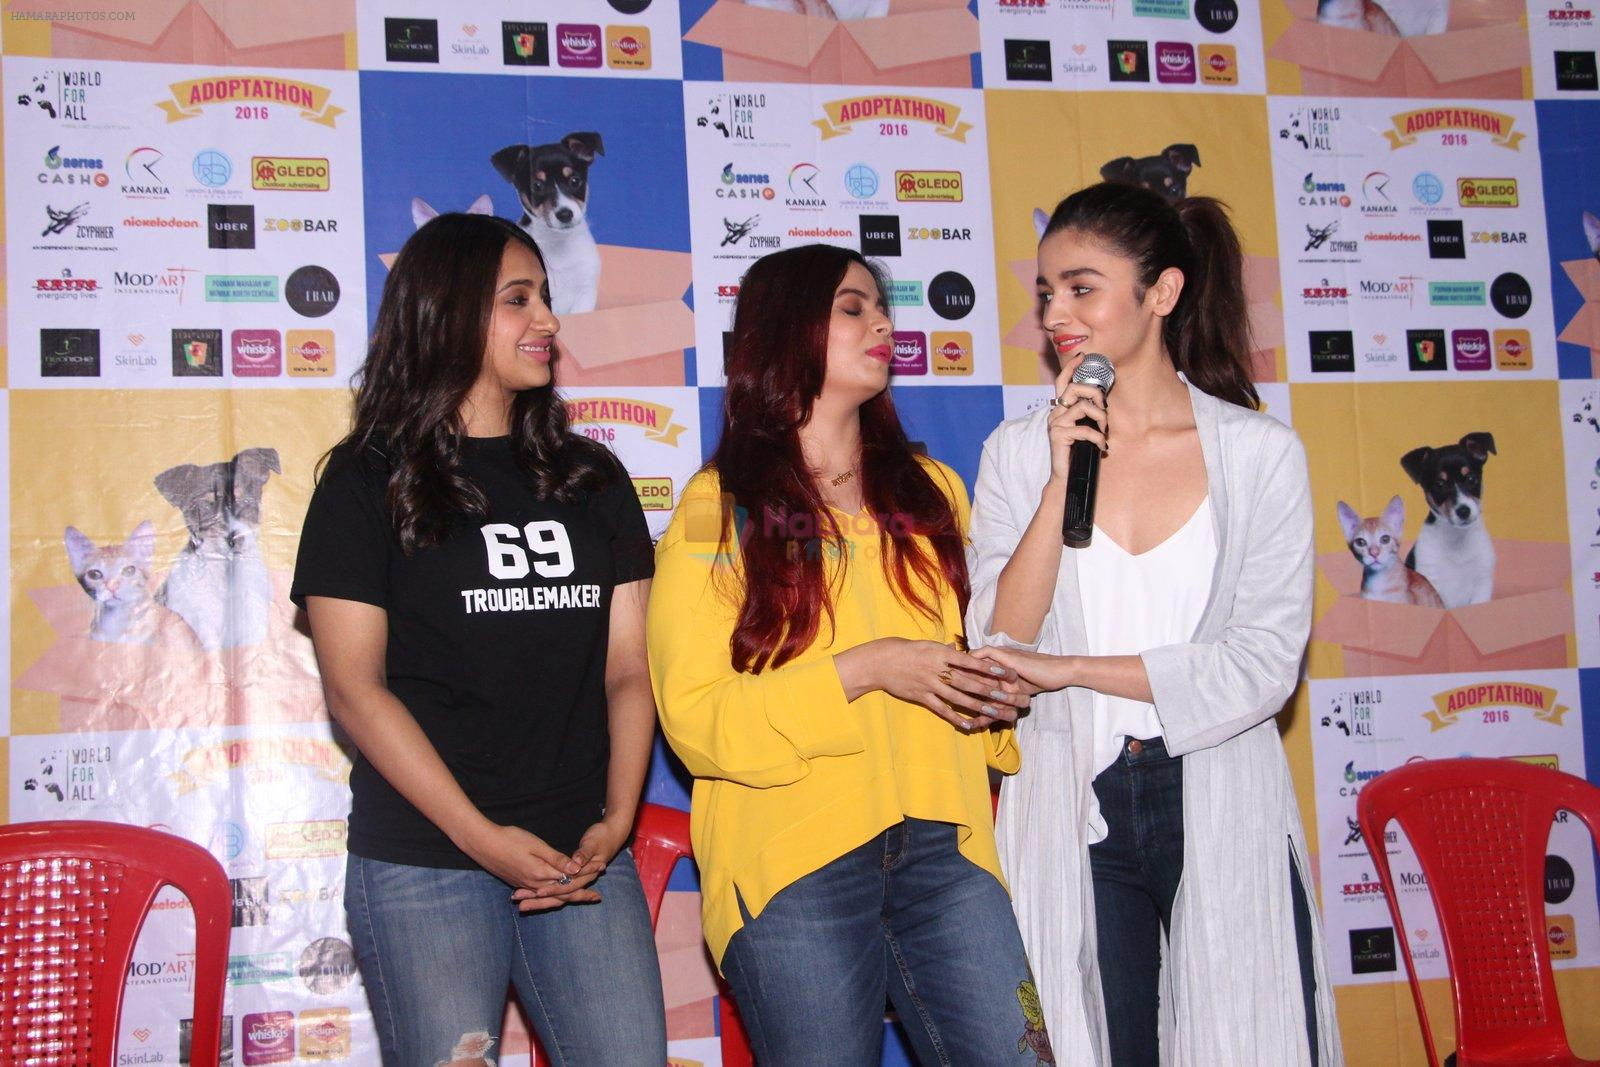 Alia Bhatt at Pet adoptation on 26th Nov 2016